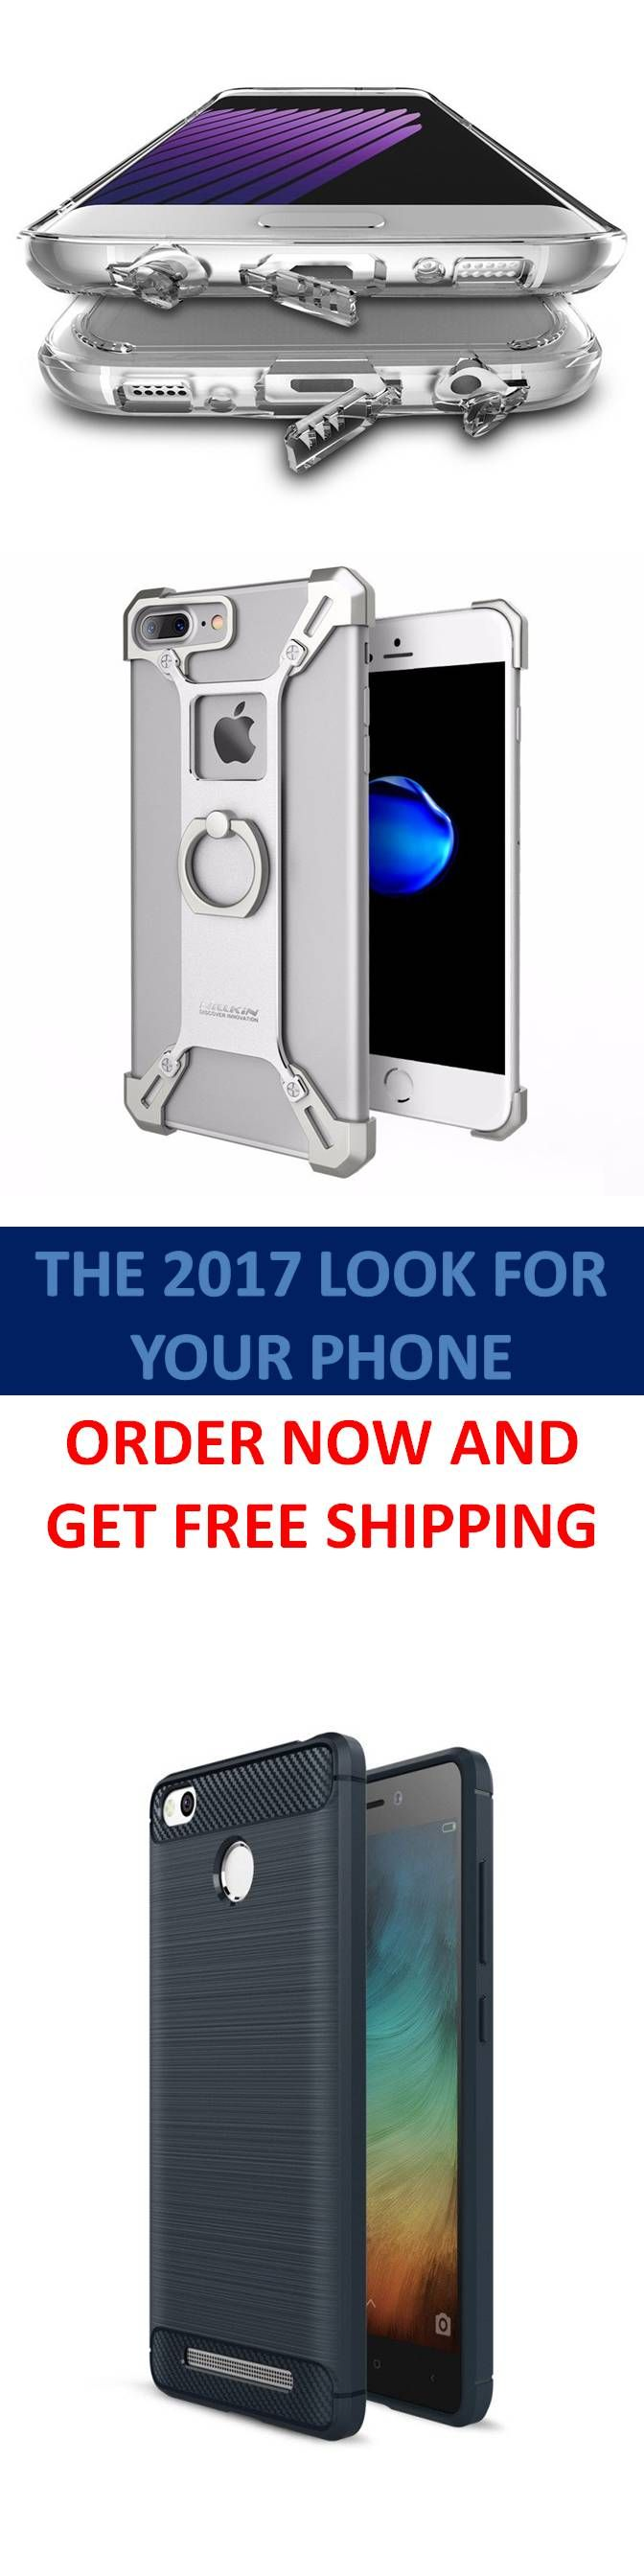 #phonecase #cellphone #smartphone #iphone #samsung #cases  Check out more latest mobile phone cases and armband for running at www.smartmoderns.com